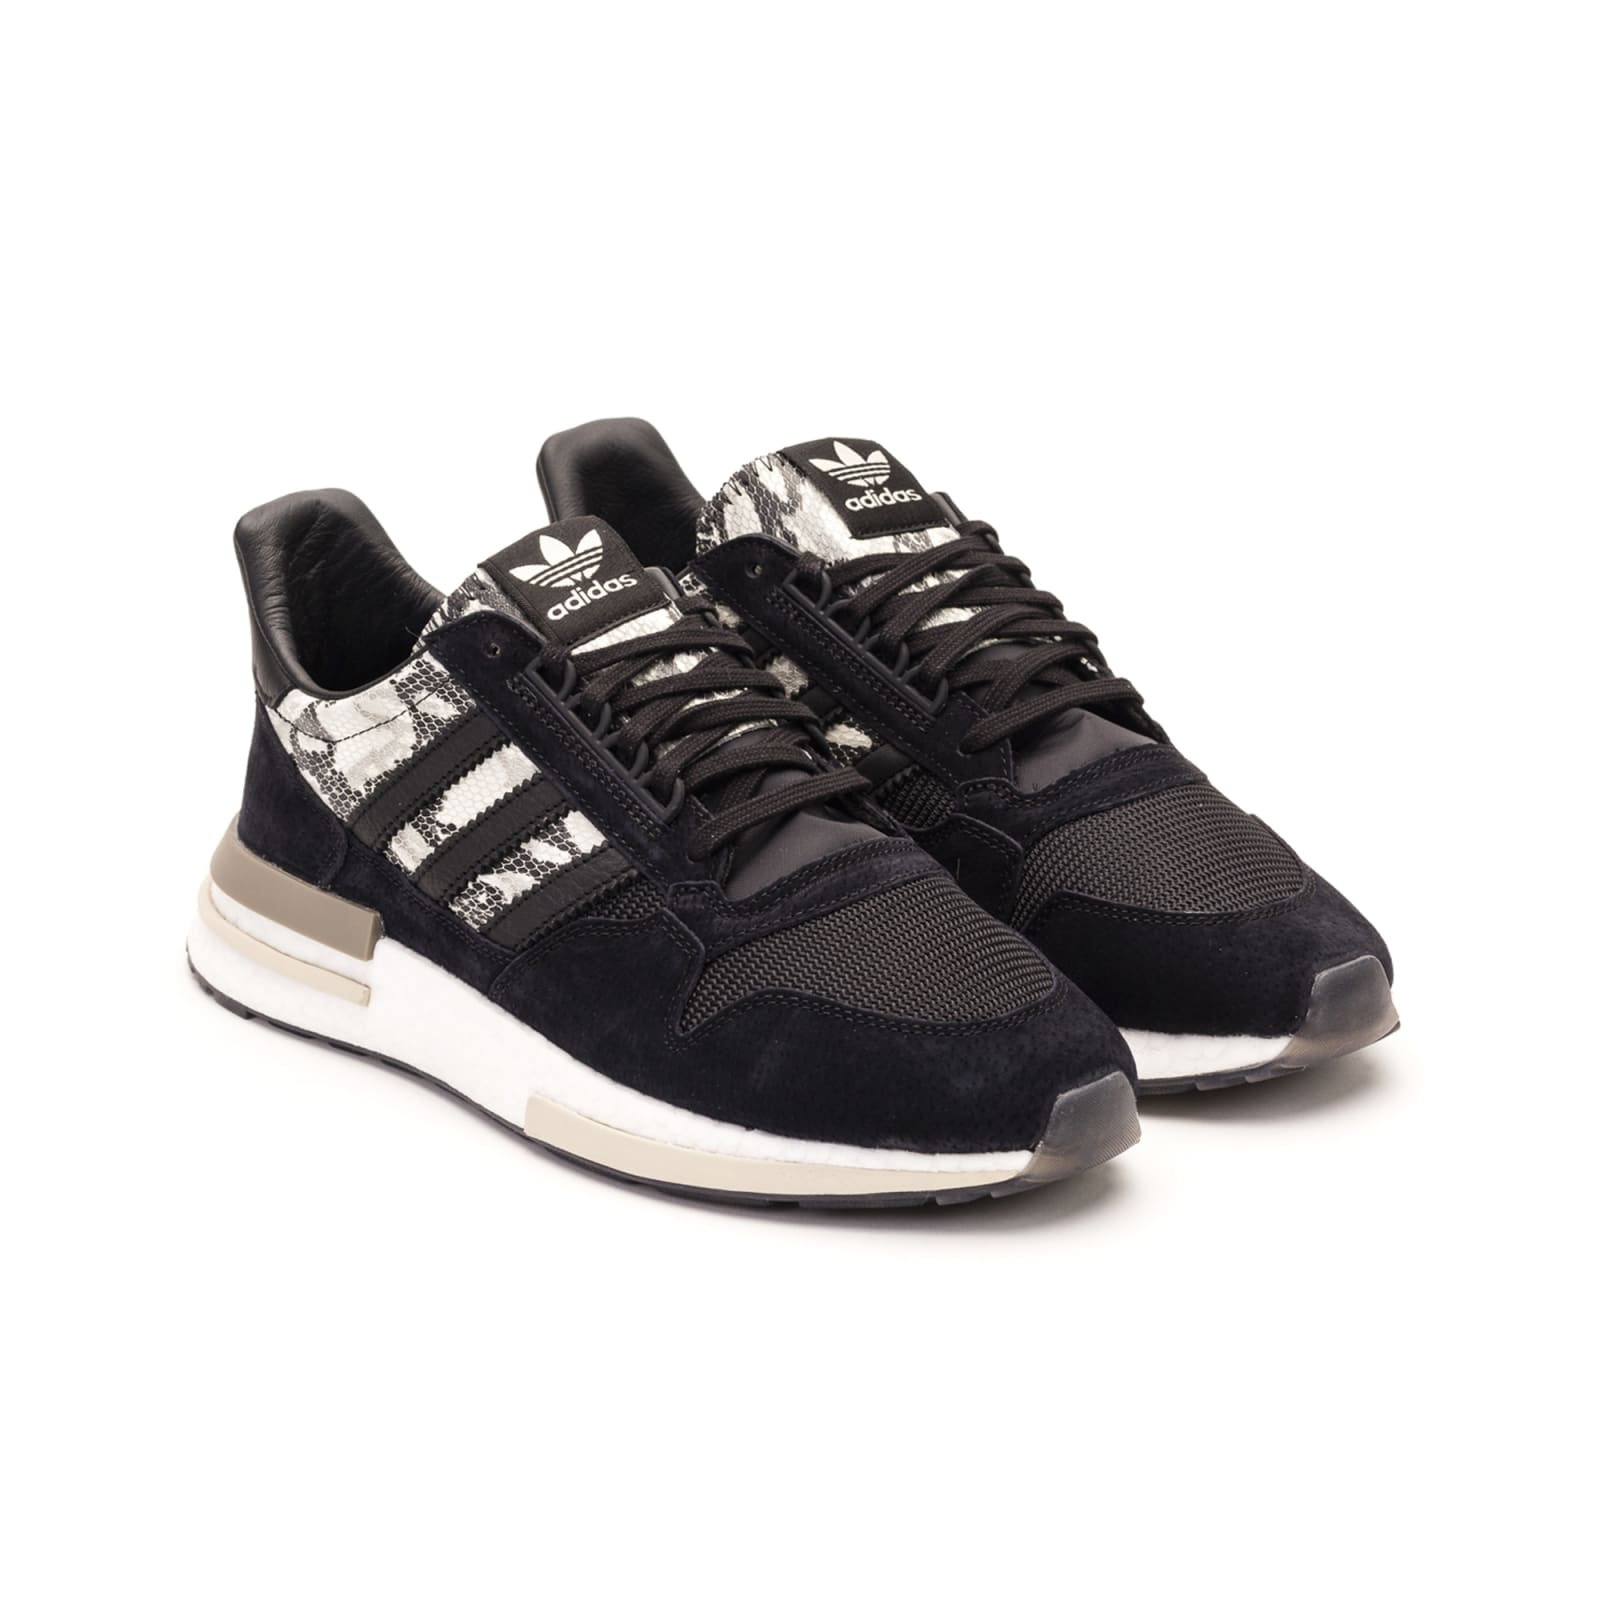 buy popular b61bd a6a60 Adidas Zx 500 Rm Sneakers